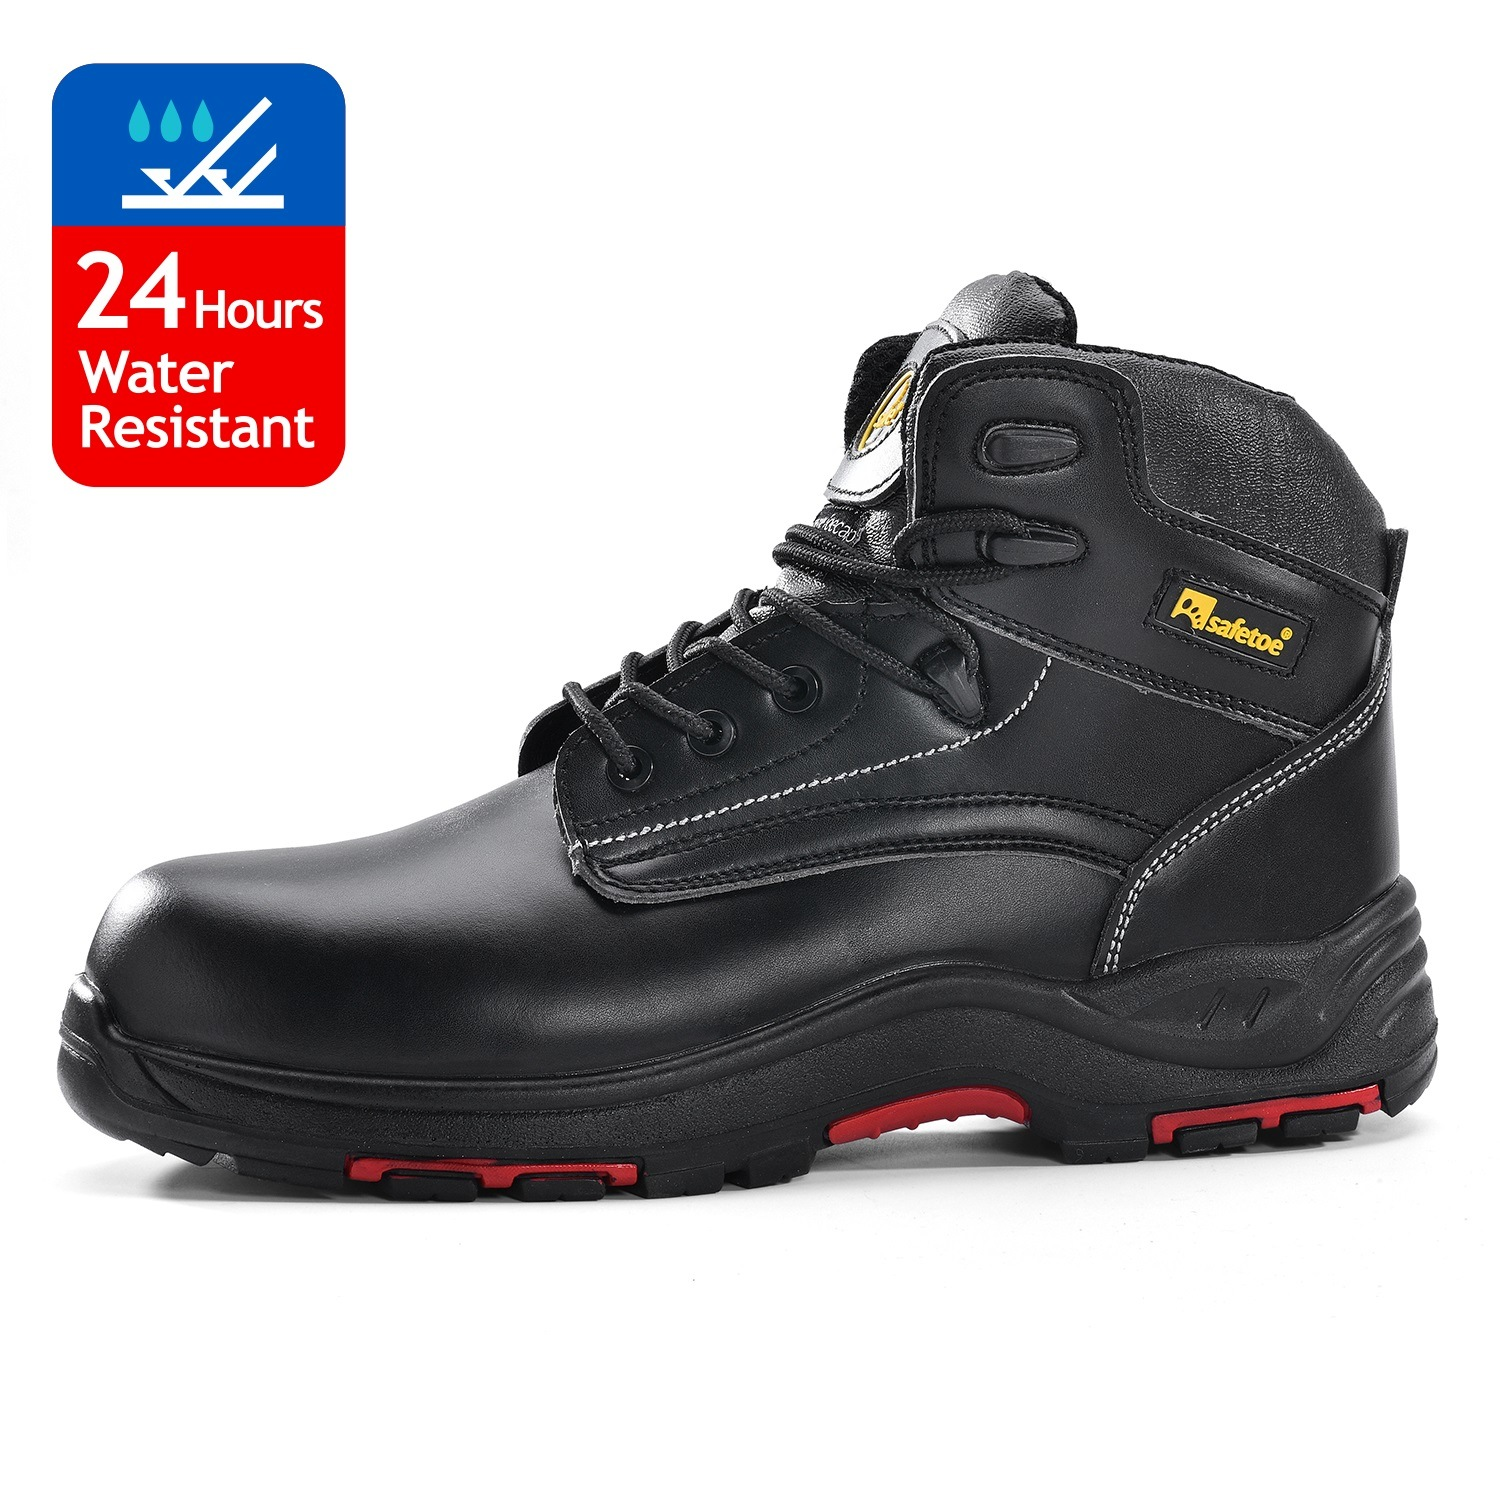 Welding Safety Boots Safety Shoes